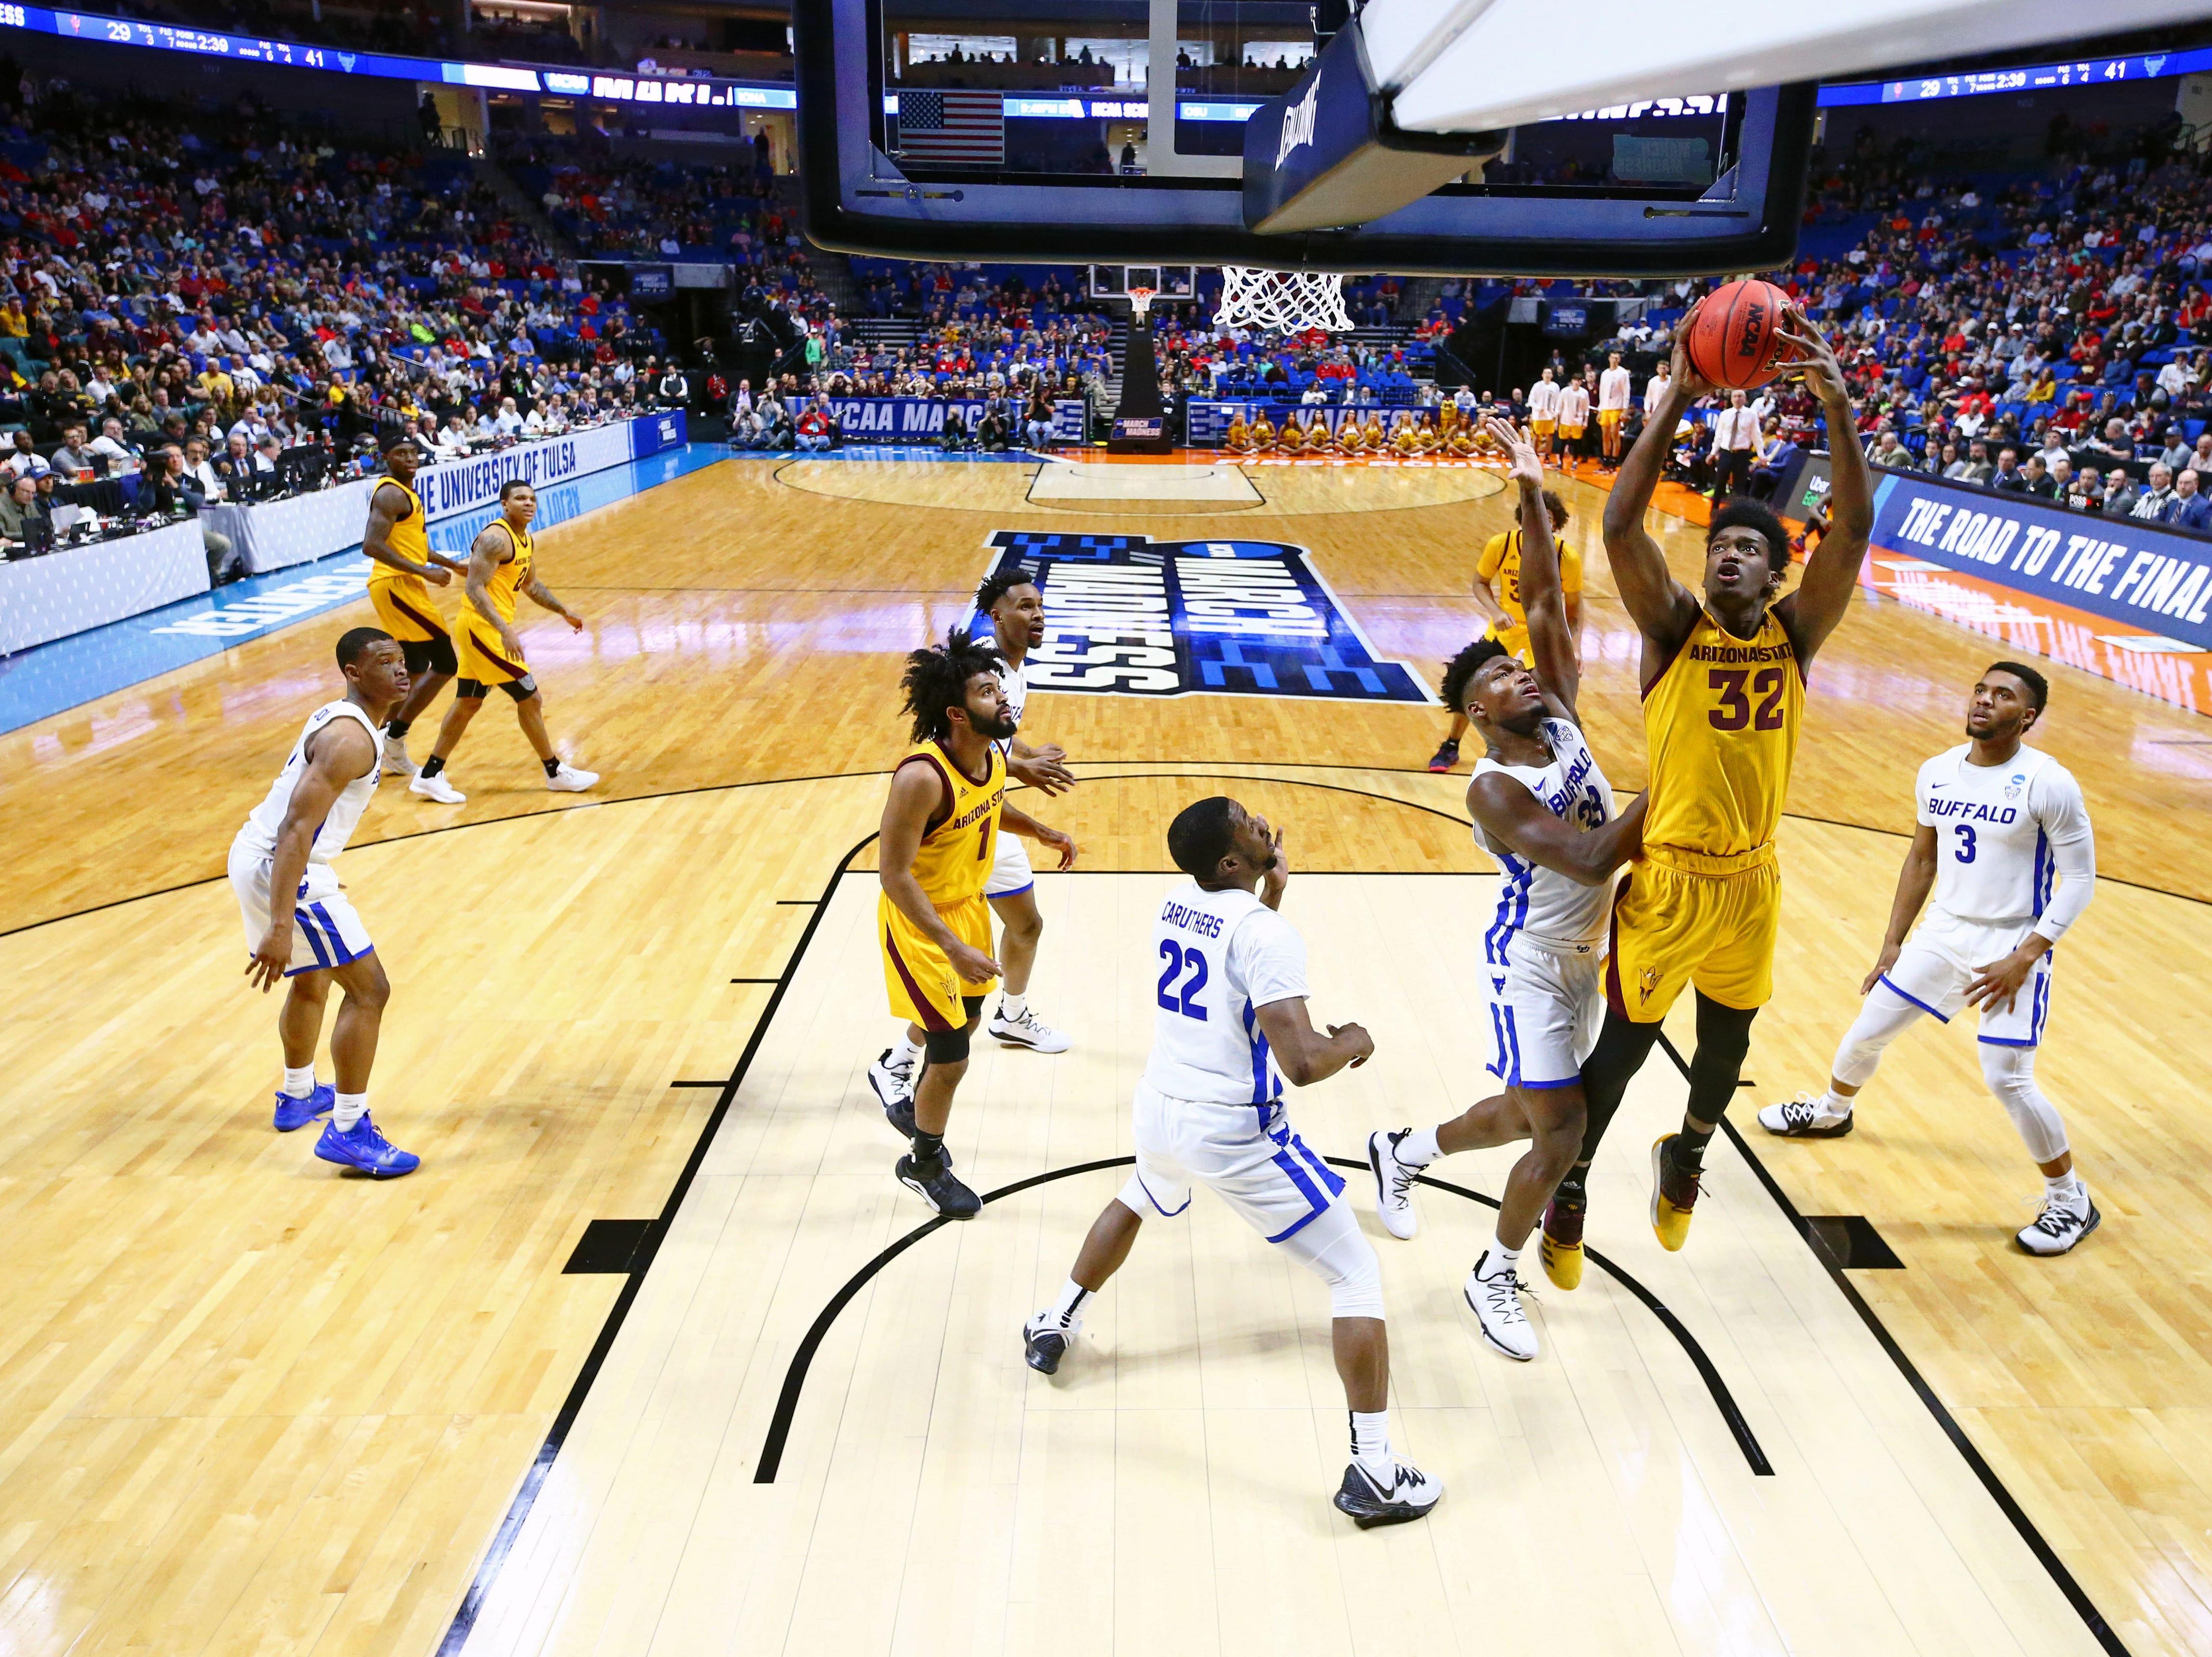 Mar 22, 2019; Tulsa, OK, USA; Arizona State Sun Devils forward De'Quon Lake (32) shoots while defended by Buffalo Bulls forward Nick Perkins (33) during the first half in the first round of the 2019 NCAA Tournament at BOK Center. Mandatory Credit: Mark J. Rebilas-USA TODAY Sports